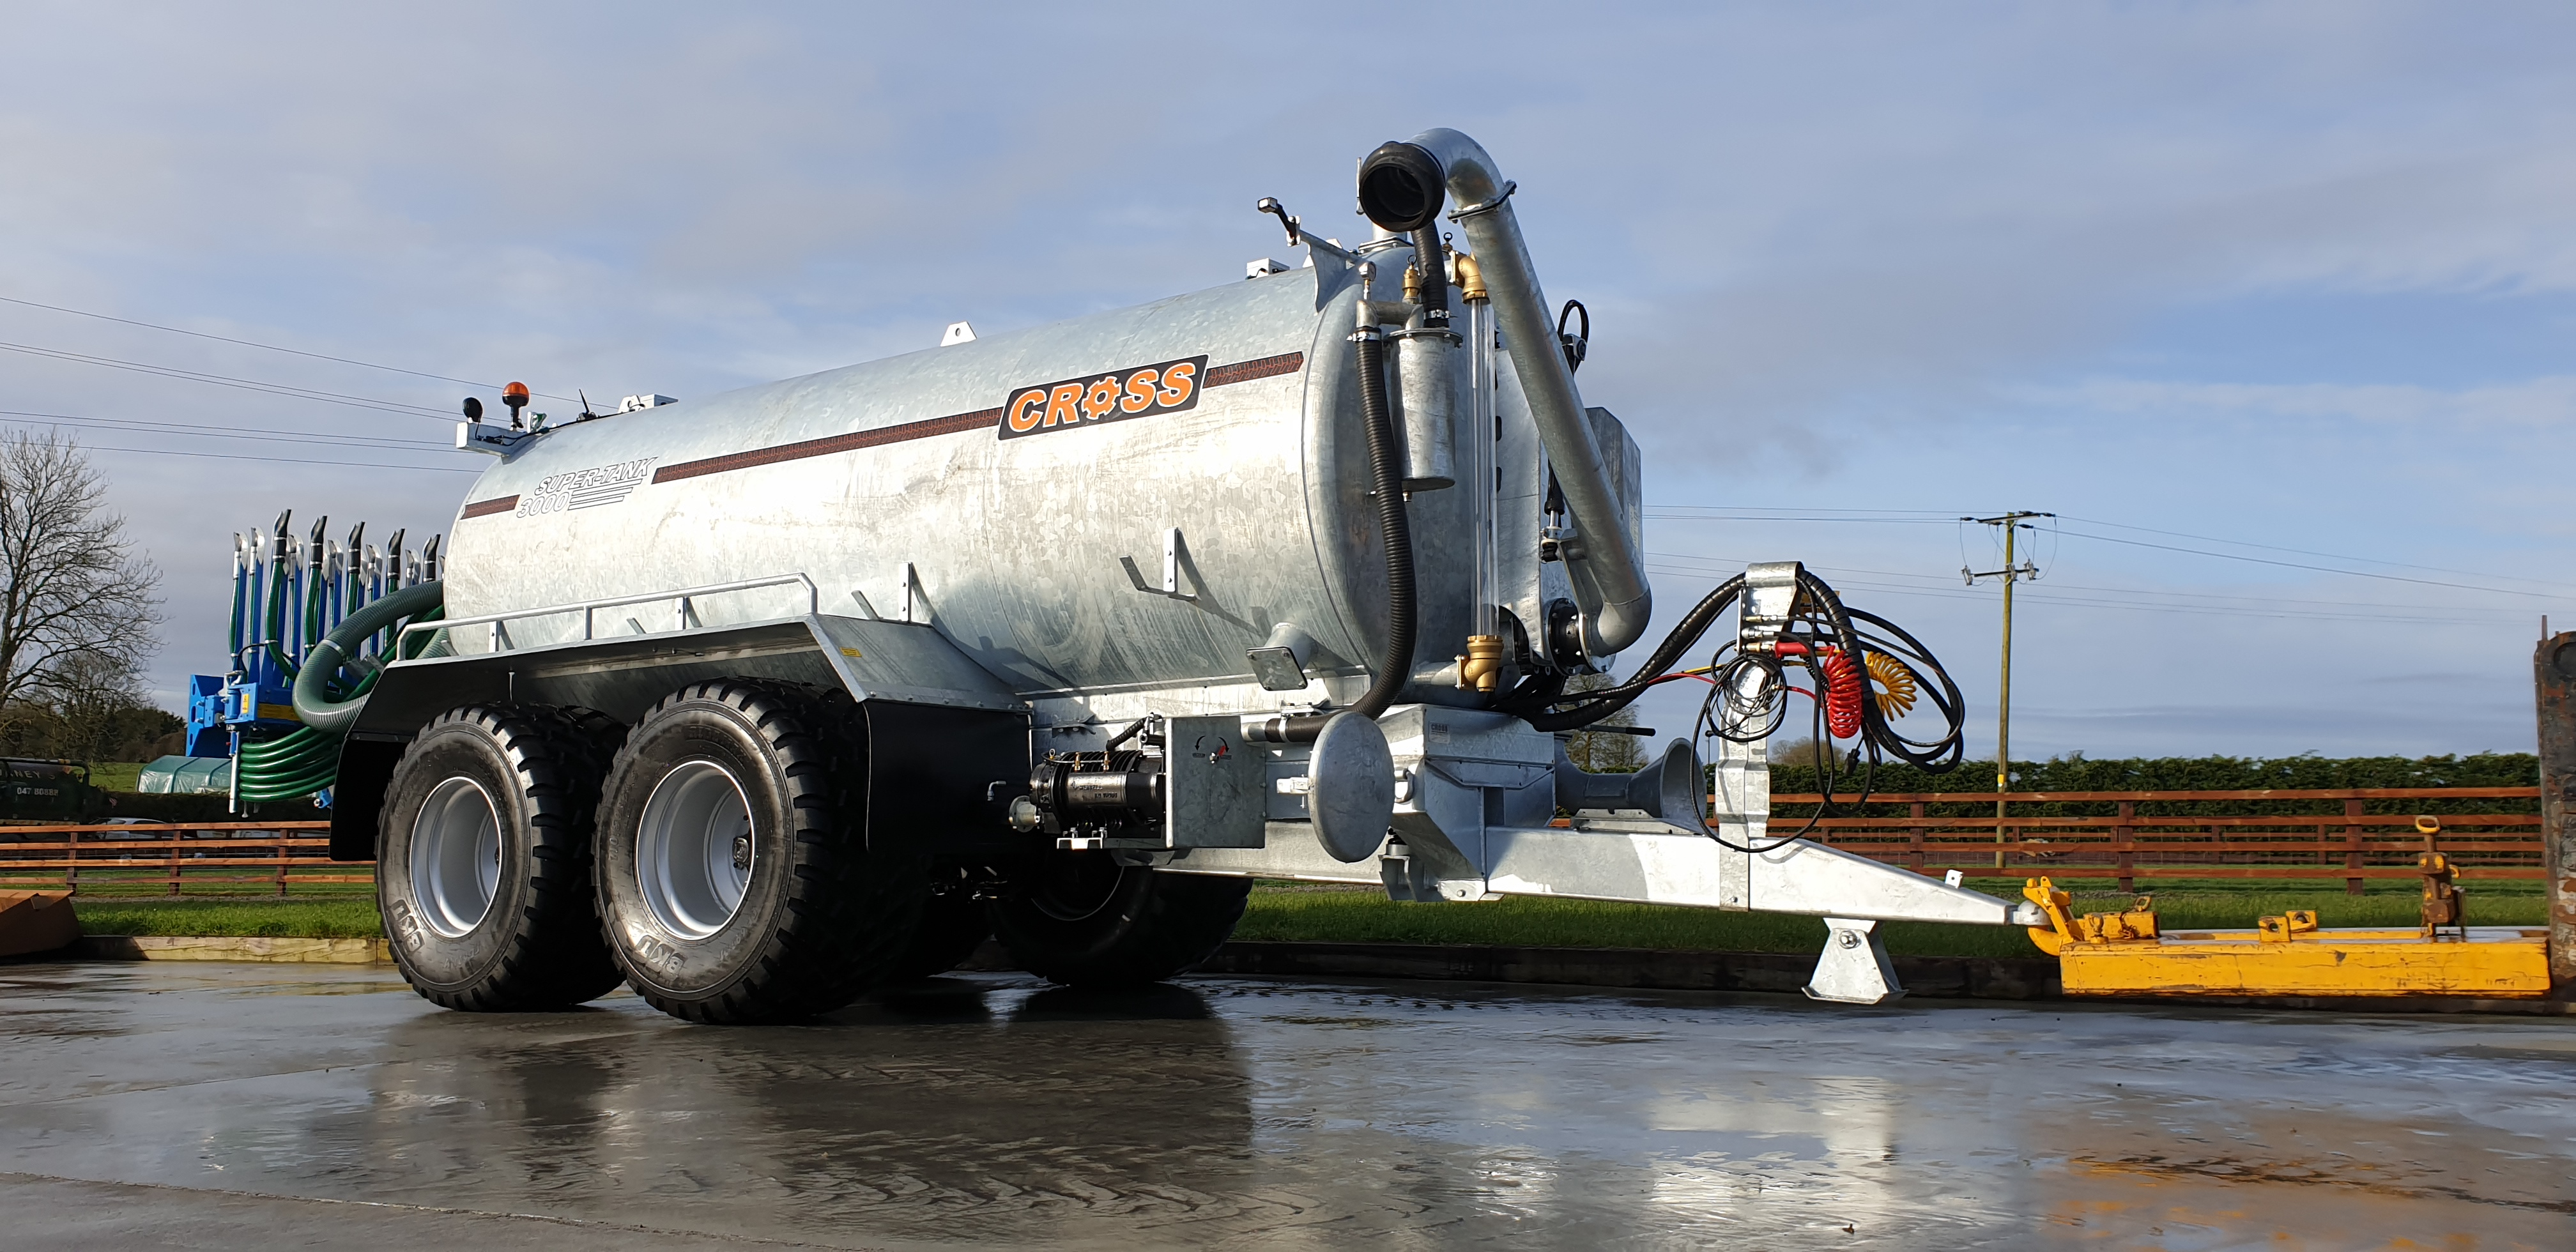 Cross 3000 Gallon Tandem Slurry Tanker with Bomech Trailing shoe